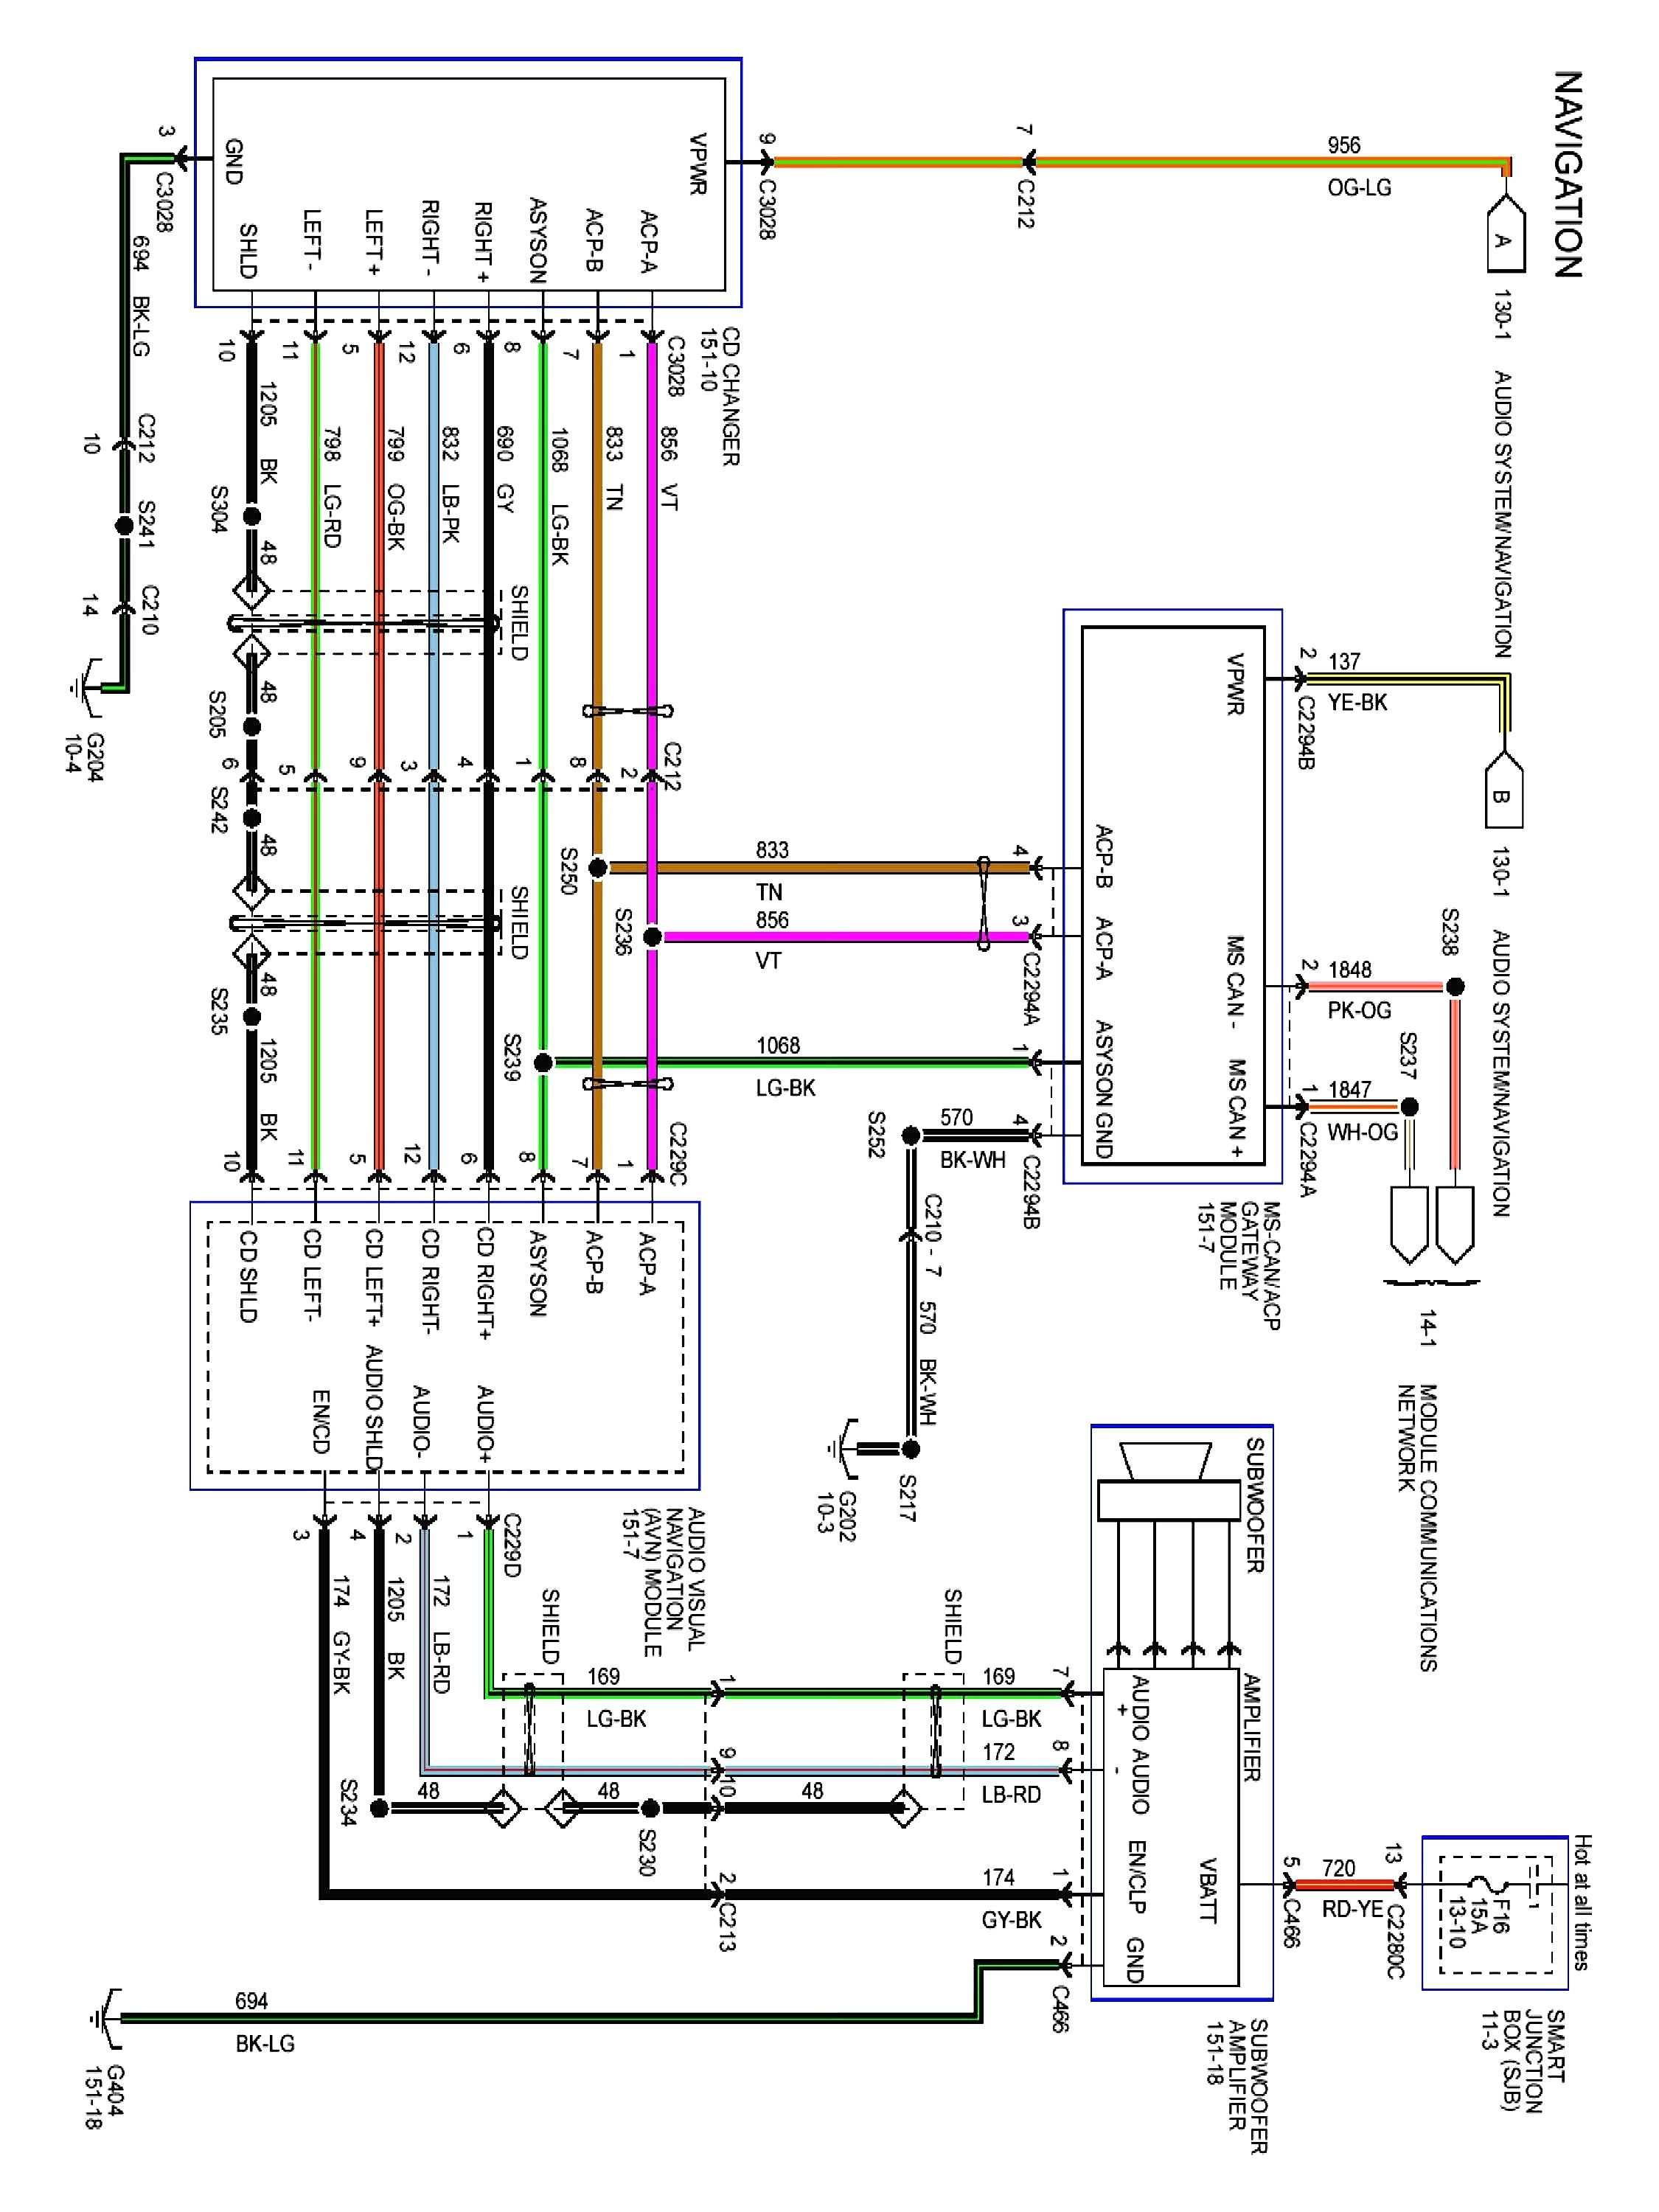 Wiring Diagram With Images Ford Expedition